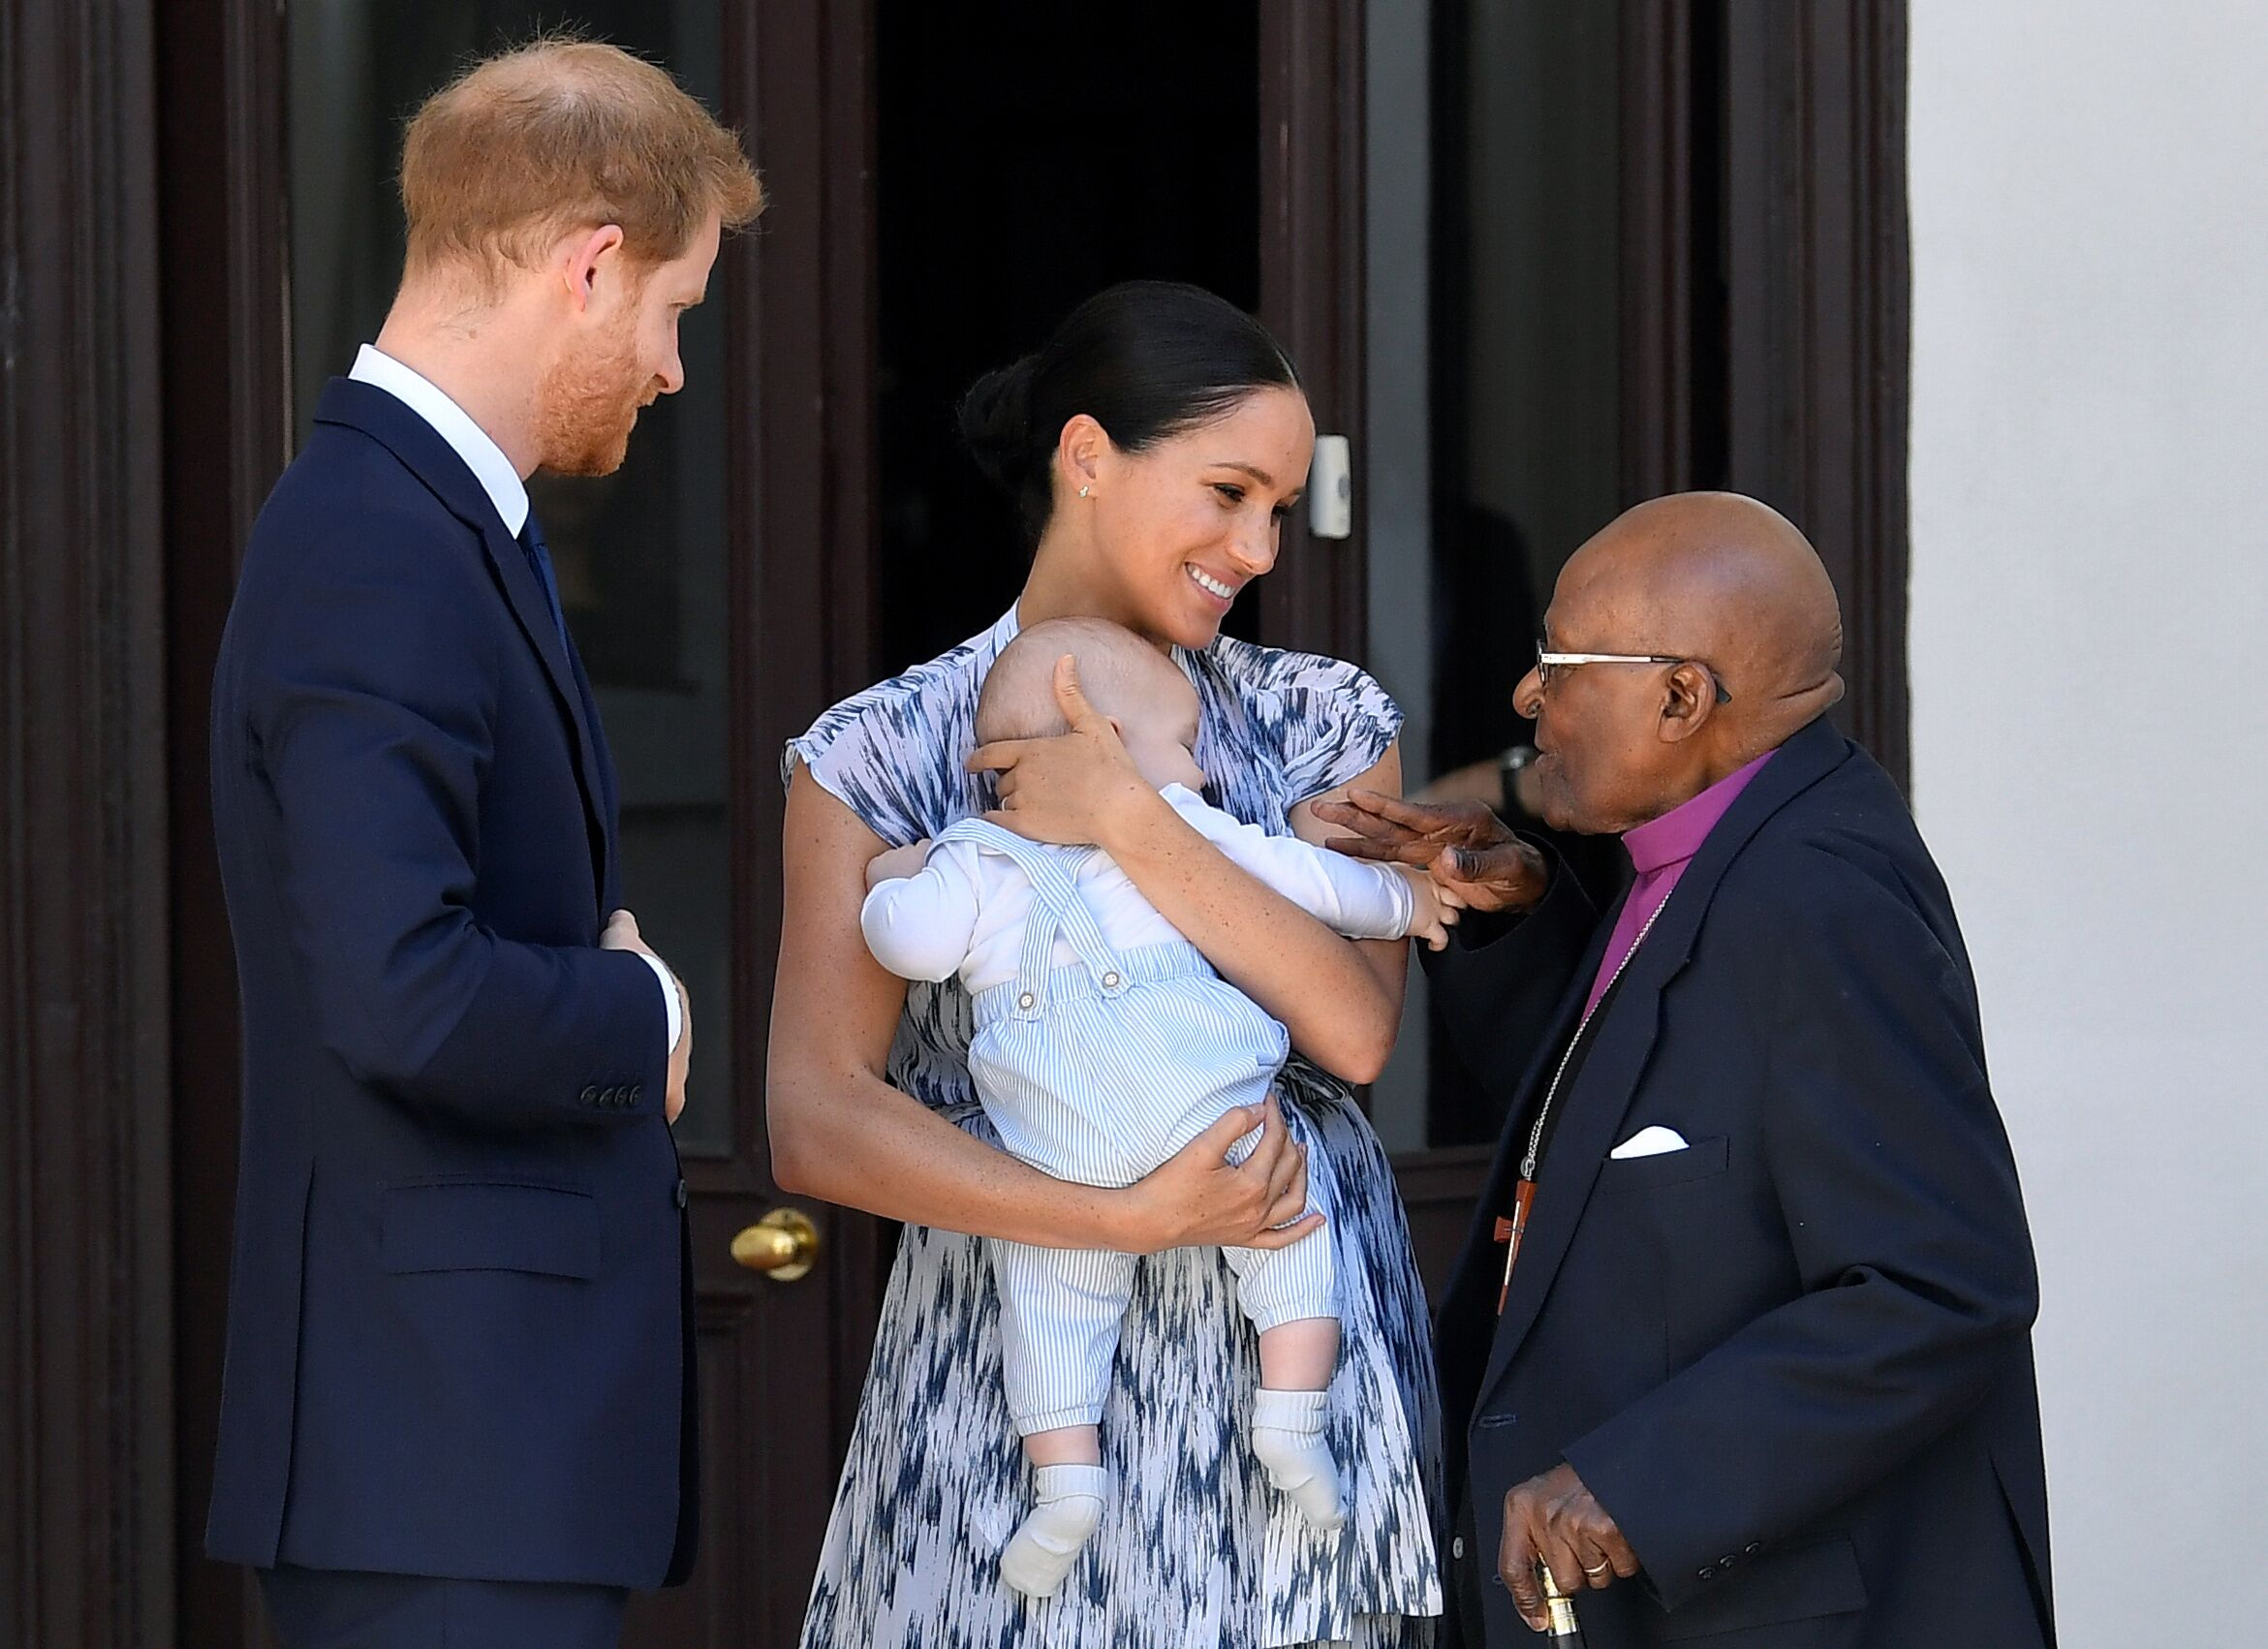 The Dukes of Sussex and Archie meet Archbishop Desmond Tutu/ Source: Getty